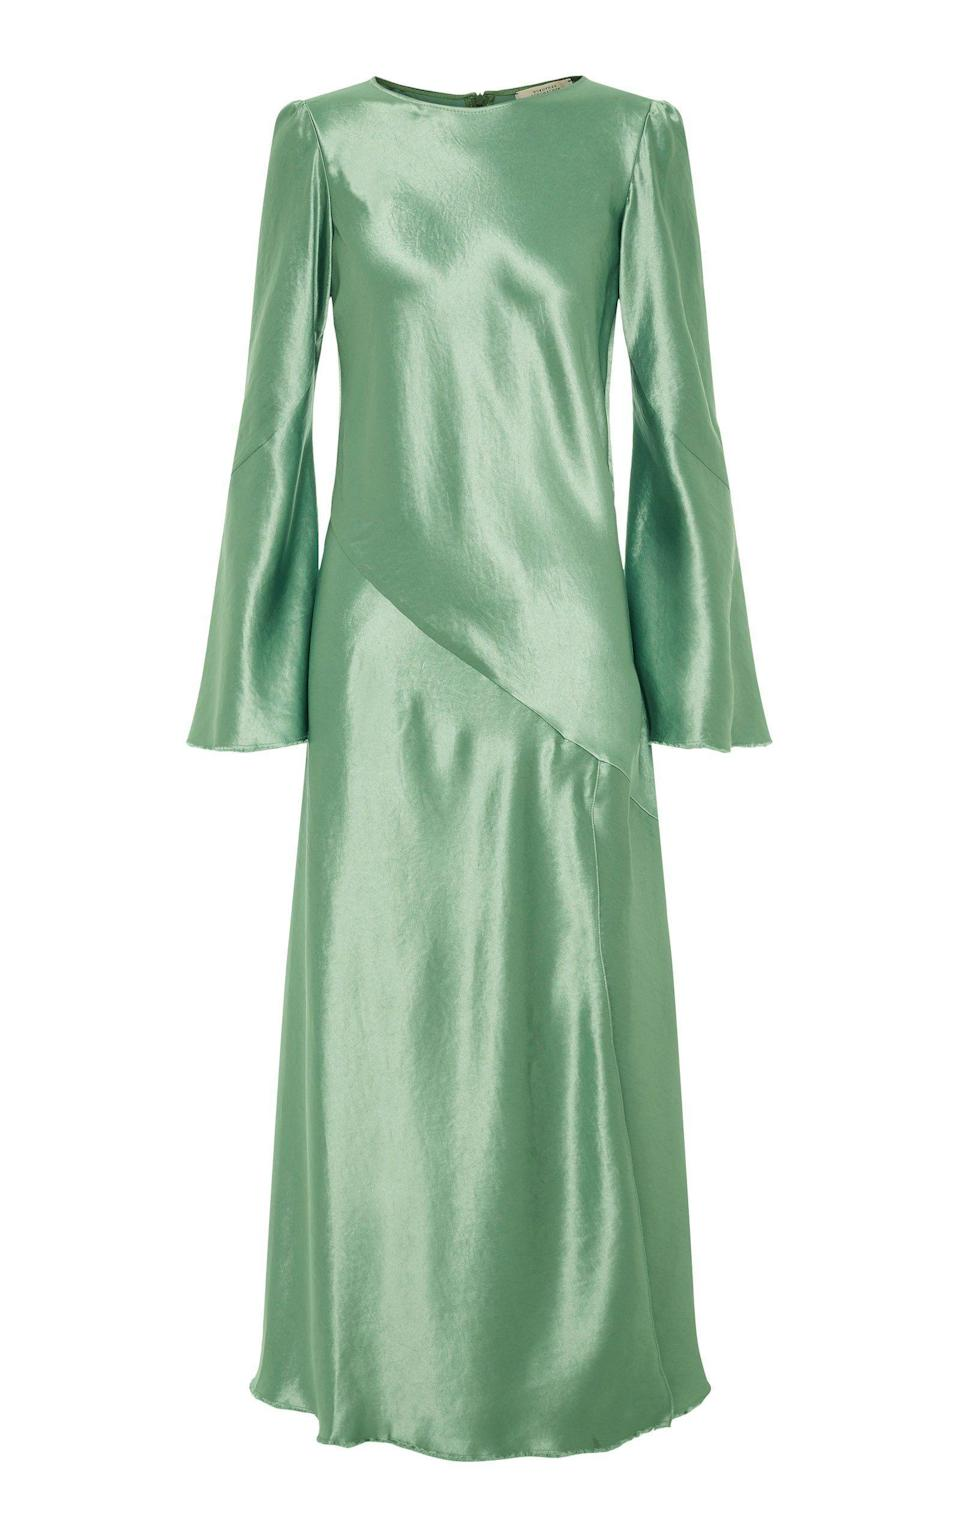 """<p><strong>Dorothee Schumacher</strong></p><p>modaoperandi.com</p><p><strong>$900.00</strong></p><p><a href=""""https://go.redirectingat.com?id=74968X1596630&url=https%3A%2F%2Fwww.modaoperandi.com%2Fwomen%2Fp%2Fdorothee-schumacher%2Fshiny-moves-satin-midi-dress%2F500918&sref=https%3A%2F%2Fwww.harpersbazaar.com%2Fwedding%2Fbridal-fashion%2Fg36750122%2Fbest-mother-of-the-groom-dresses%2F"""" rel=""""nofollow noopener"""" target=""""_blank"""" data-ylk=""""slk:SHOP NOW"""" class=""""link rapid-noclick-resp"""">SHOP NOW</a></p><p>Mother-of-the-groom (or <a href=""""https://www.harpersbazaar.com/wedding/bridal-fashion/g36441041/elegant-mother-of-the-bride-dresses/"""" rel=""""nofollow noopener"""" target=""""_blank"""" data-ylk=""""slk:bride"""" class=""""link rapid-noclick-resp"""">bride</a>) dressing doesn't have to feel matronly. Keep it classic with a high neckline, but opt for a pop of color in a sleek and formal fabric. A midi length works well to show off a pair of chic shoes and easily transitions from day to night. </p>"""